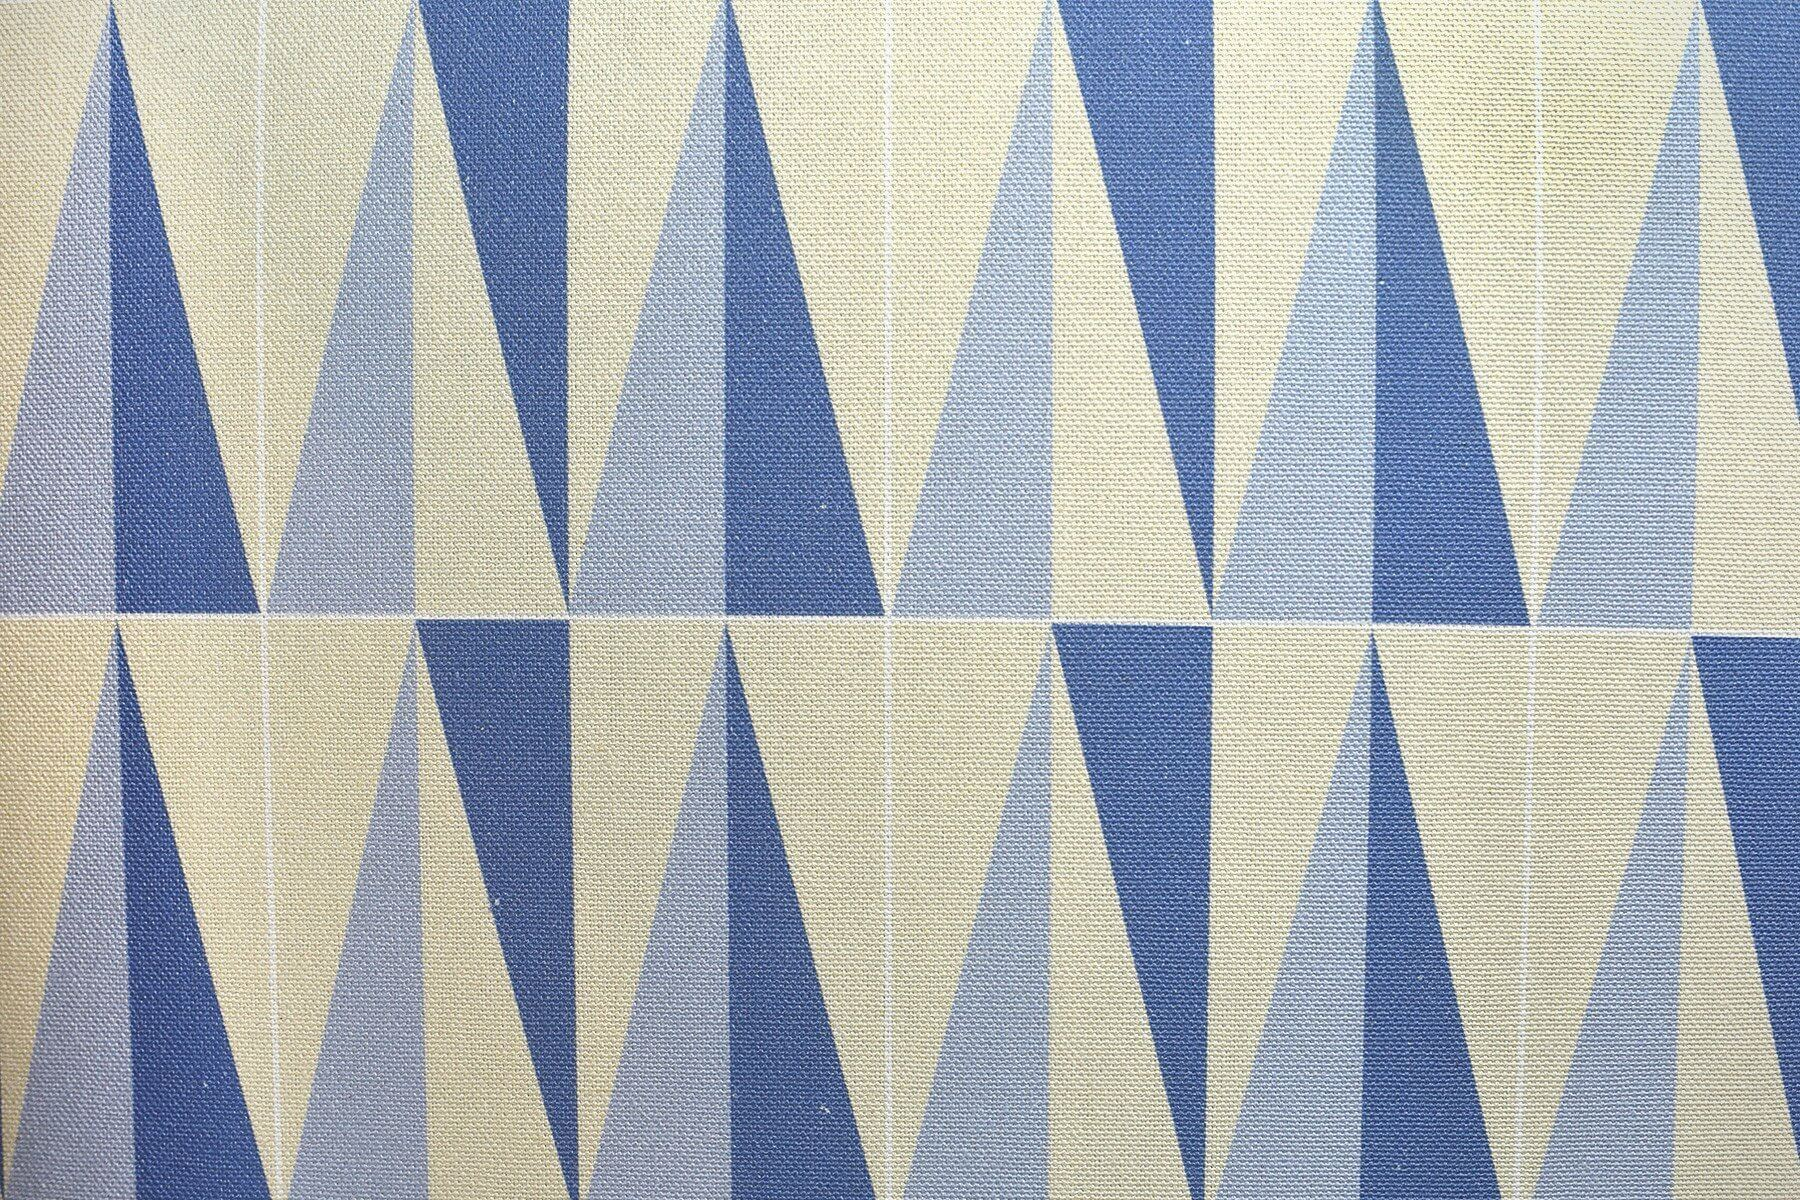 Italian designer Gio Ponti cristalli fabric pattern at design and art gallery Casati Gallery